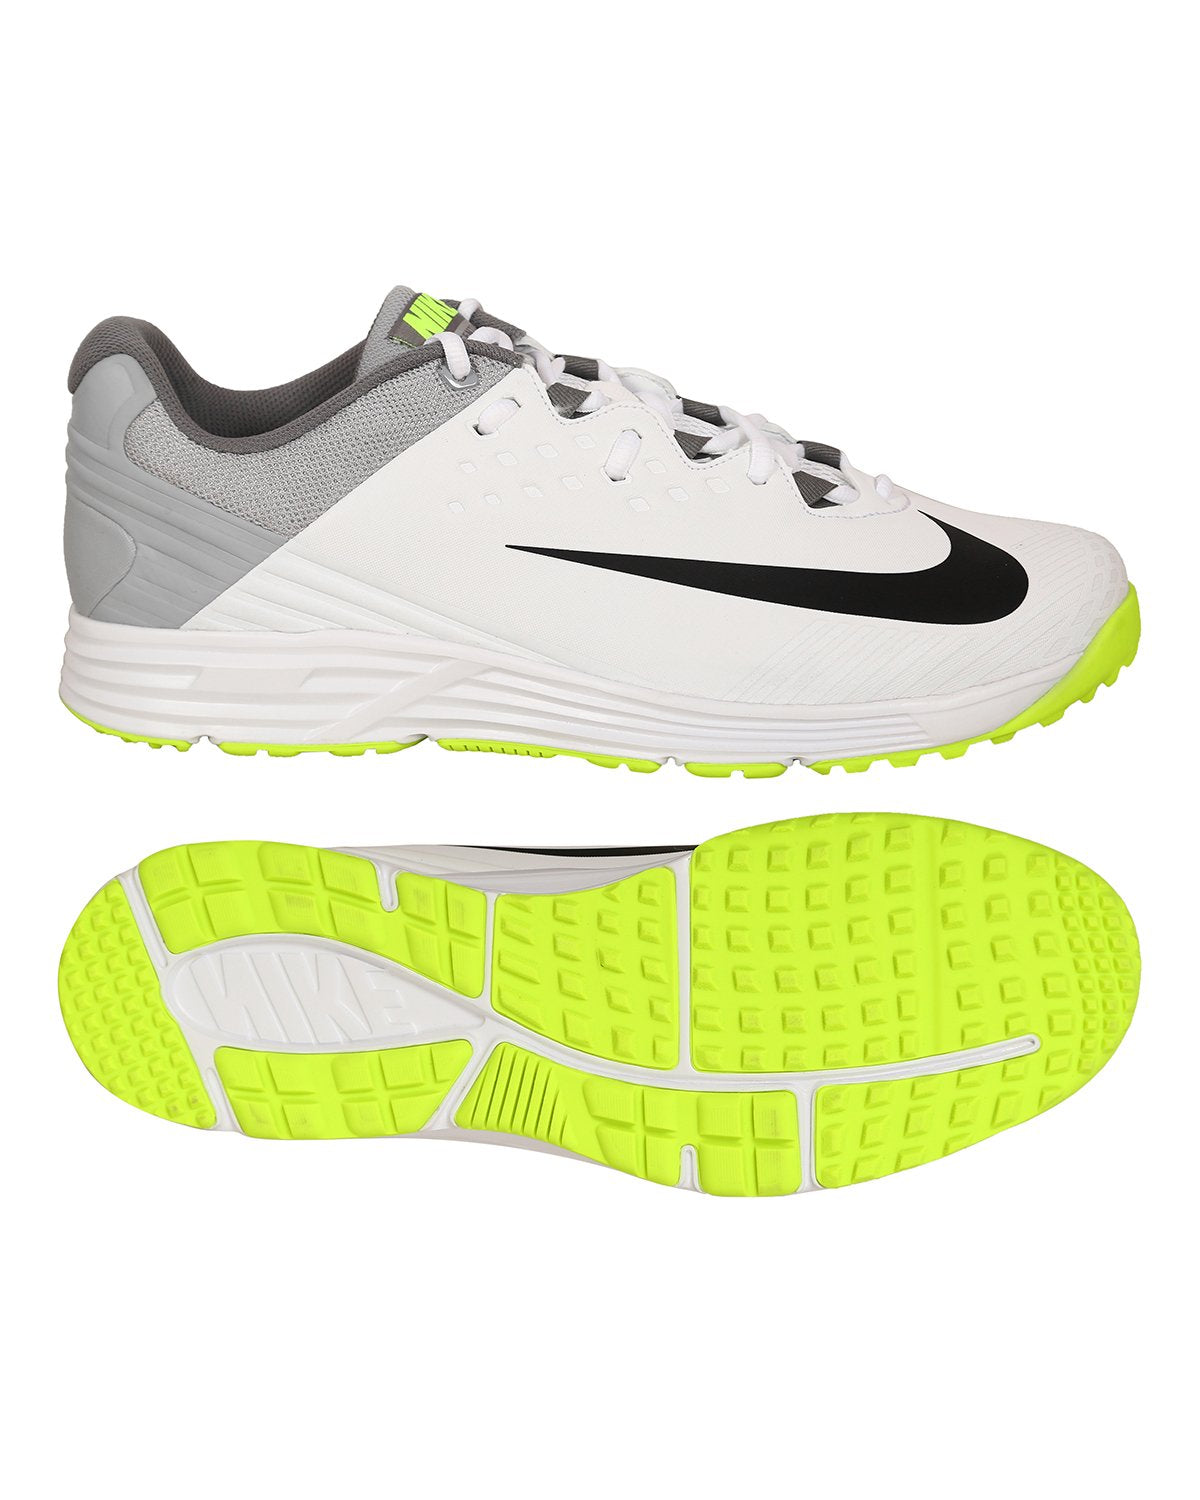 Nike Potential 3 Green - Rubber Cricket